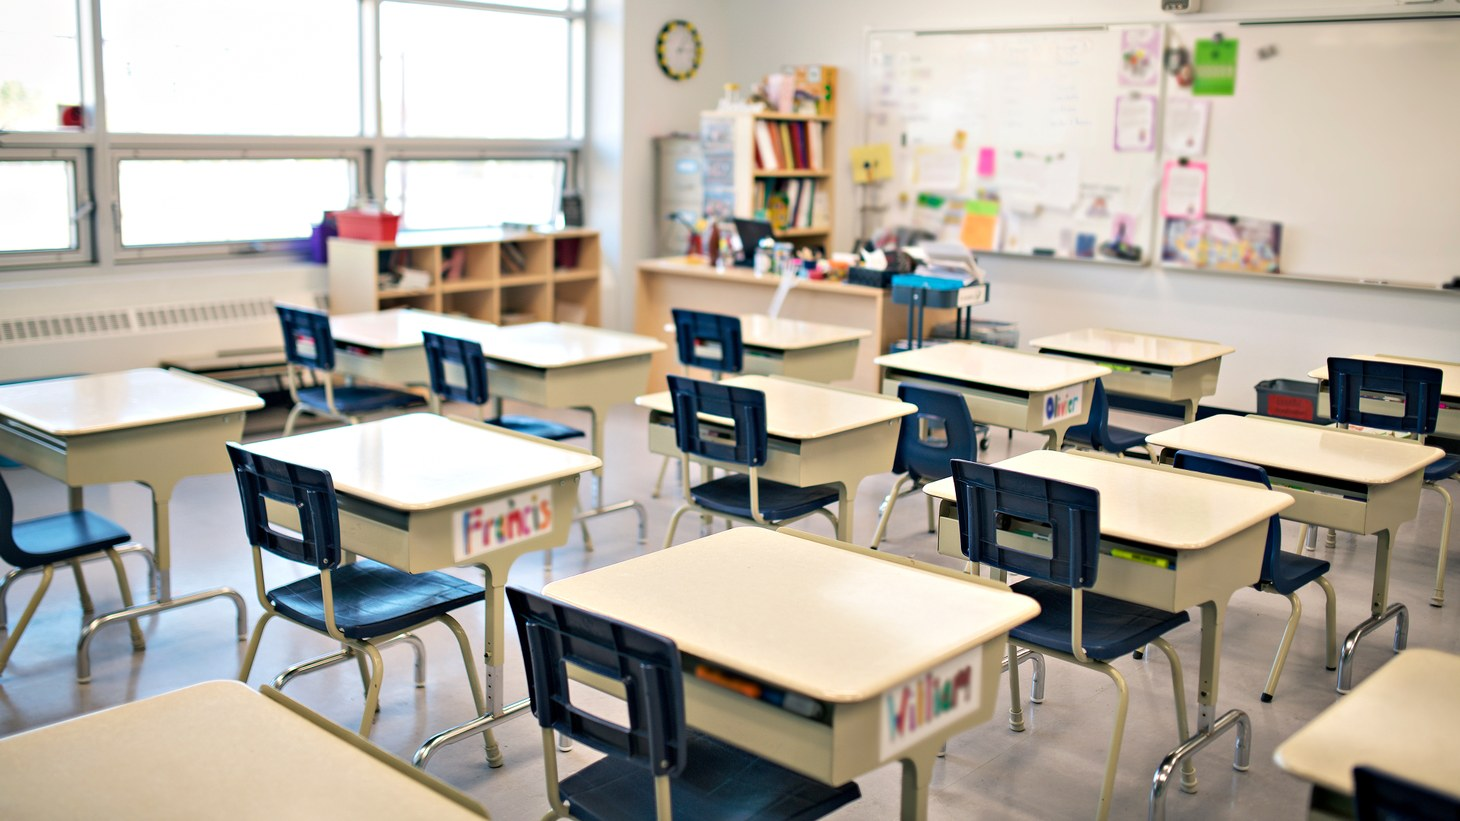 LAUSD is facing a labor shortage of teachers, nurses, and janitors.